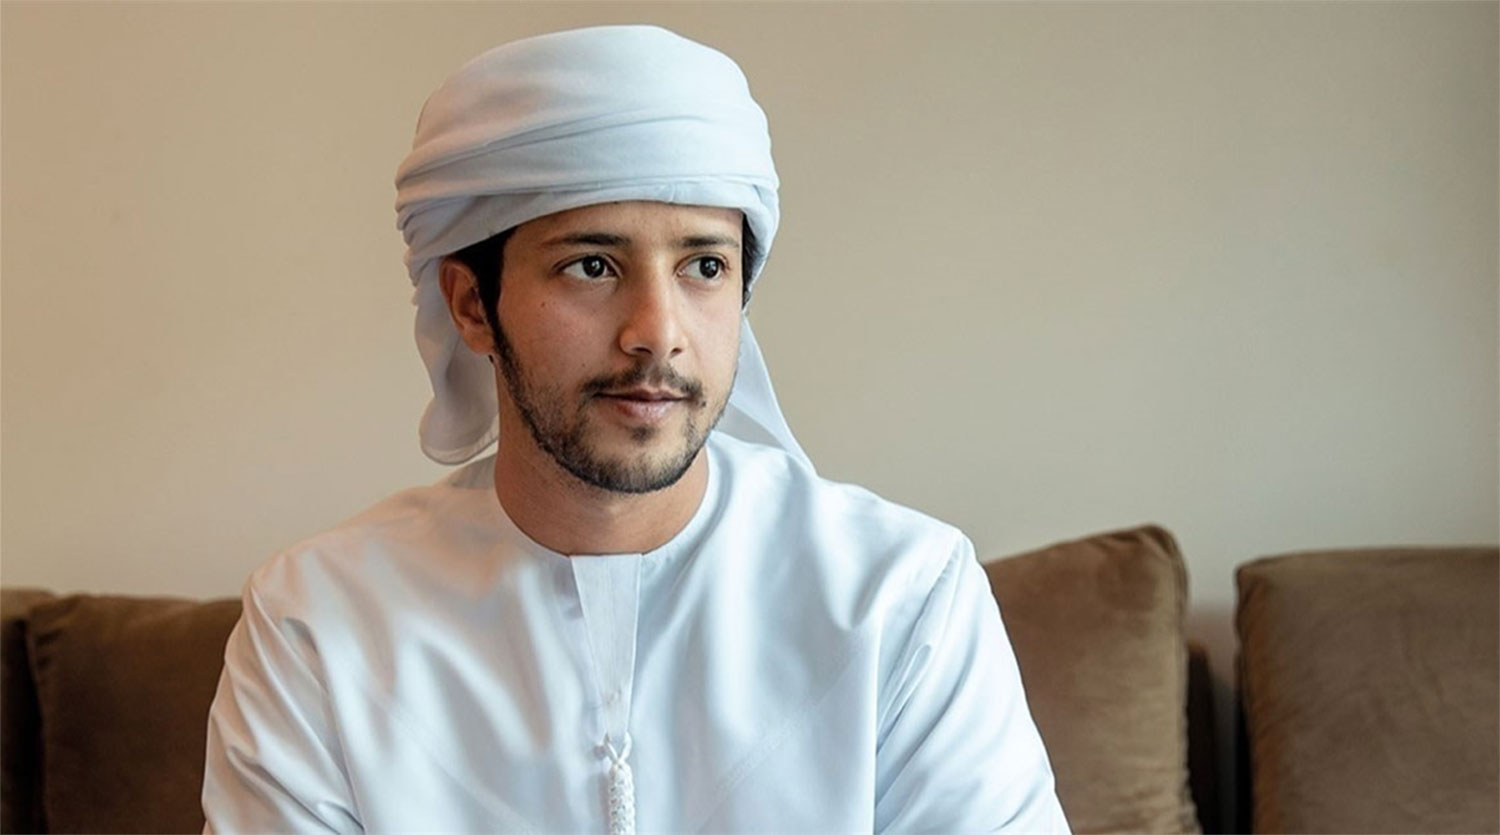 Rashed Ali Almansoori – Young Emirati Journalist Who Gained Fame as a Leading Tech blogger and influencer.